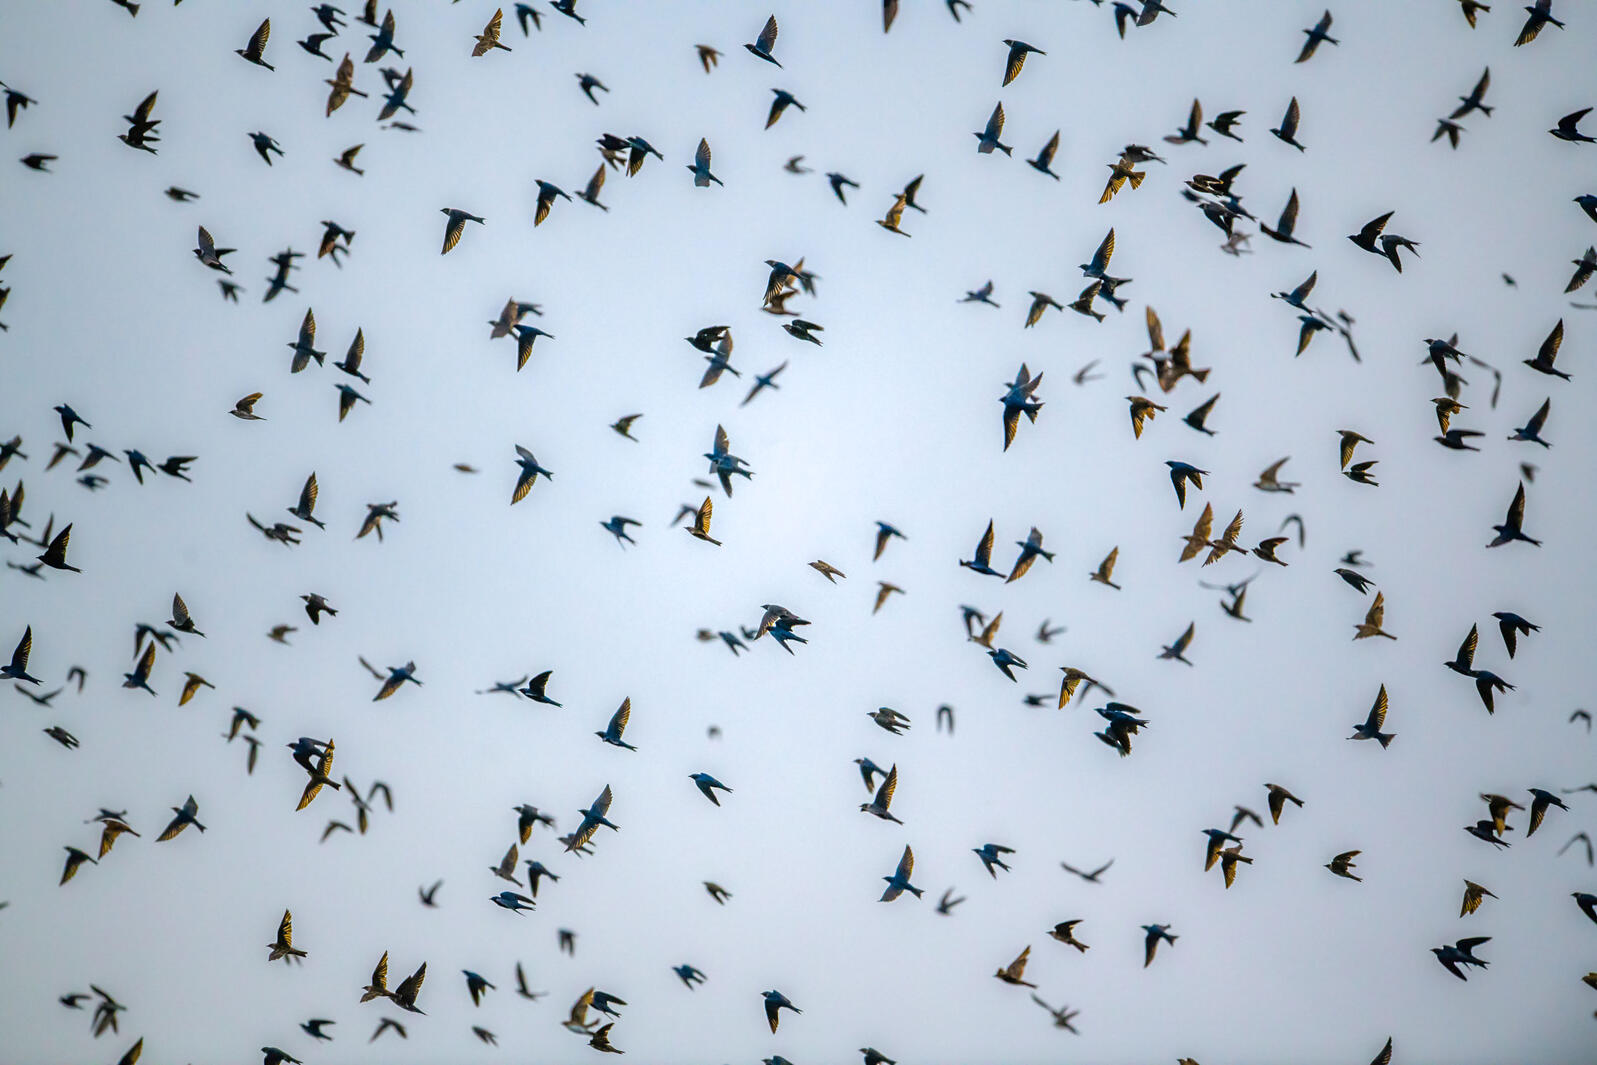 A flock of Purple Martins—small swallows that catch insects in the air—fly over the field site in Brazil. Marcos Amend